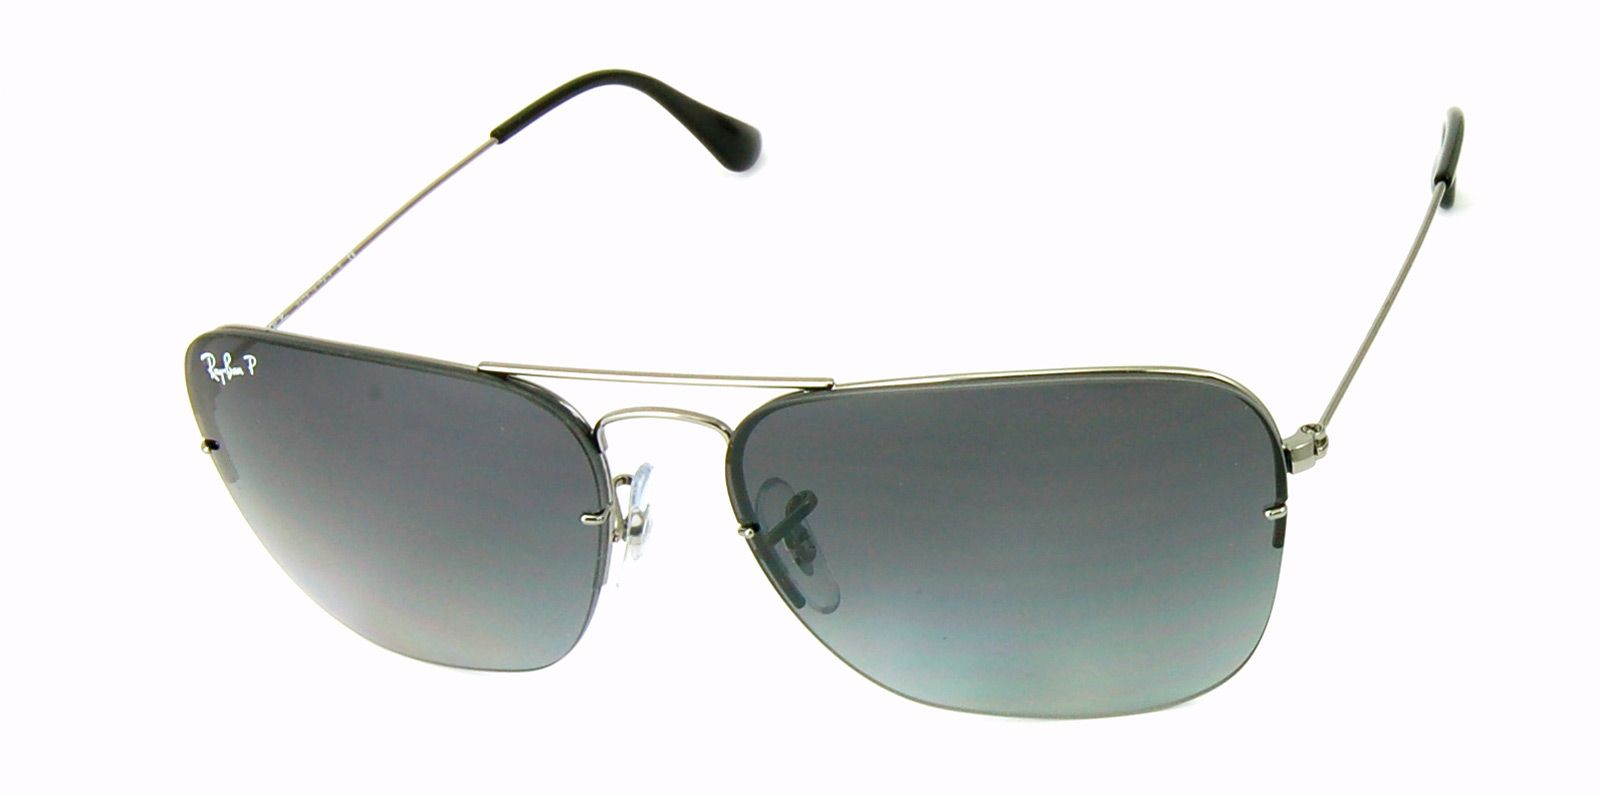 discount sunglasses ray ban  ciontave on